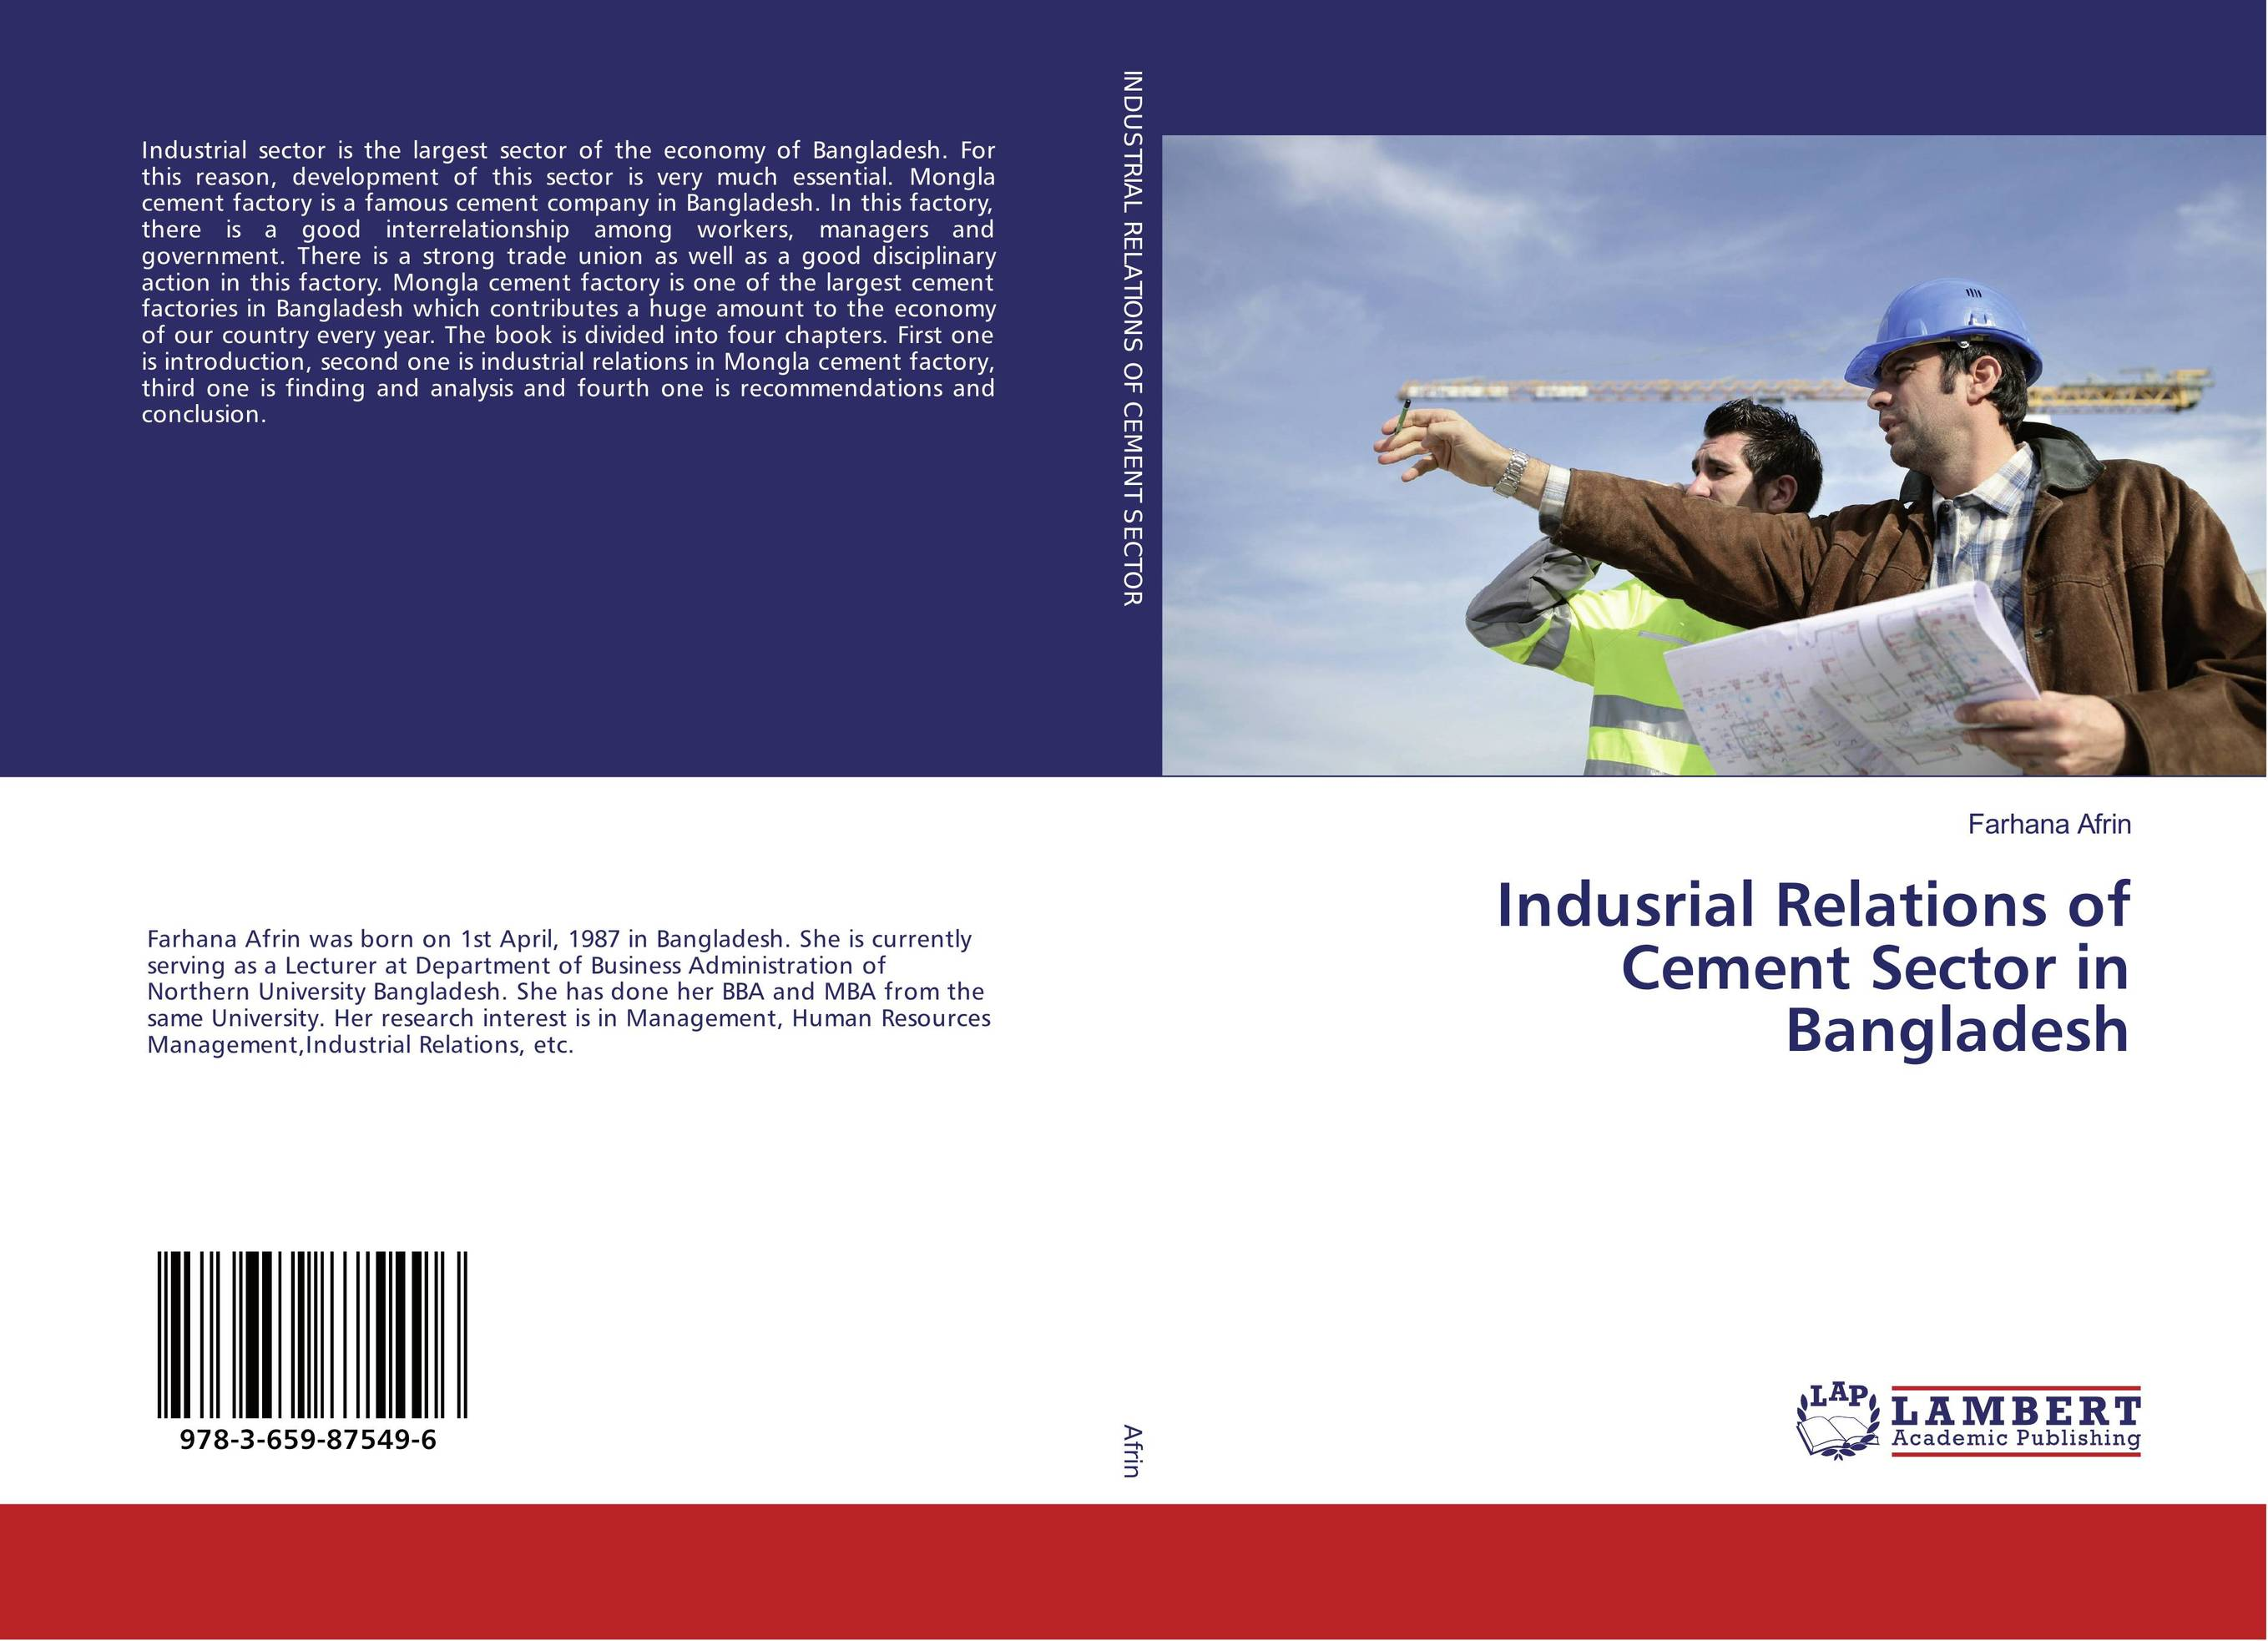 Indusrial Relations of Cement Sector in Bangladesh